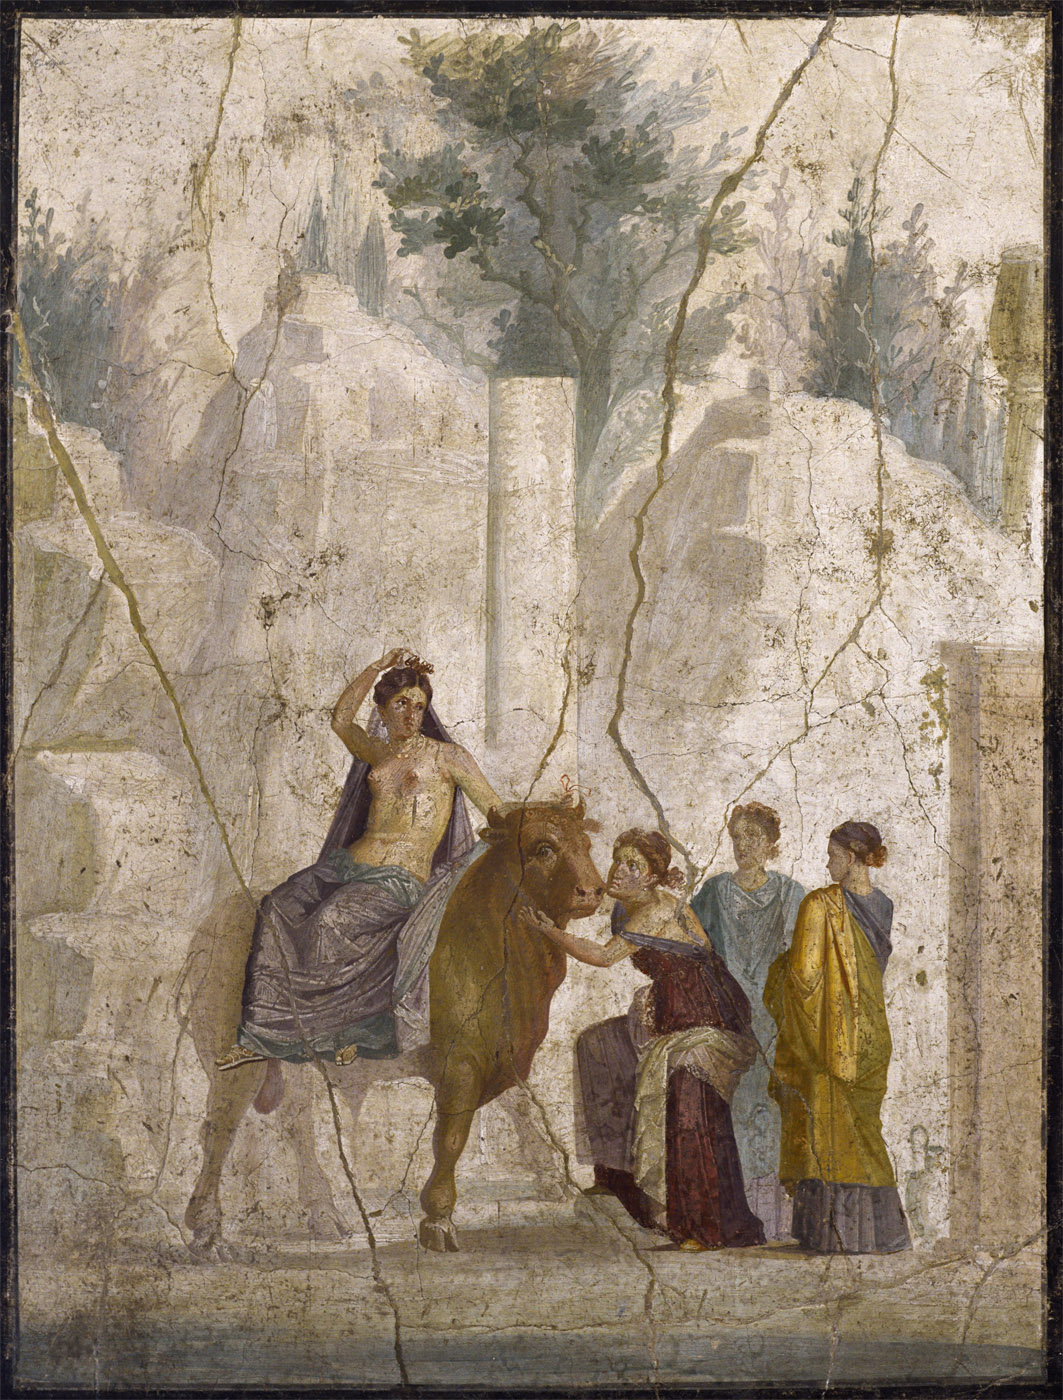 Europa riding the bull. Fresco from Pompeii (House of Fatal Love, IX, 5, 18). 1st century CE. Inv. No. 111475. Naples, National Archaeological Museum